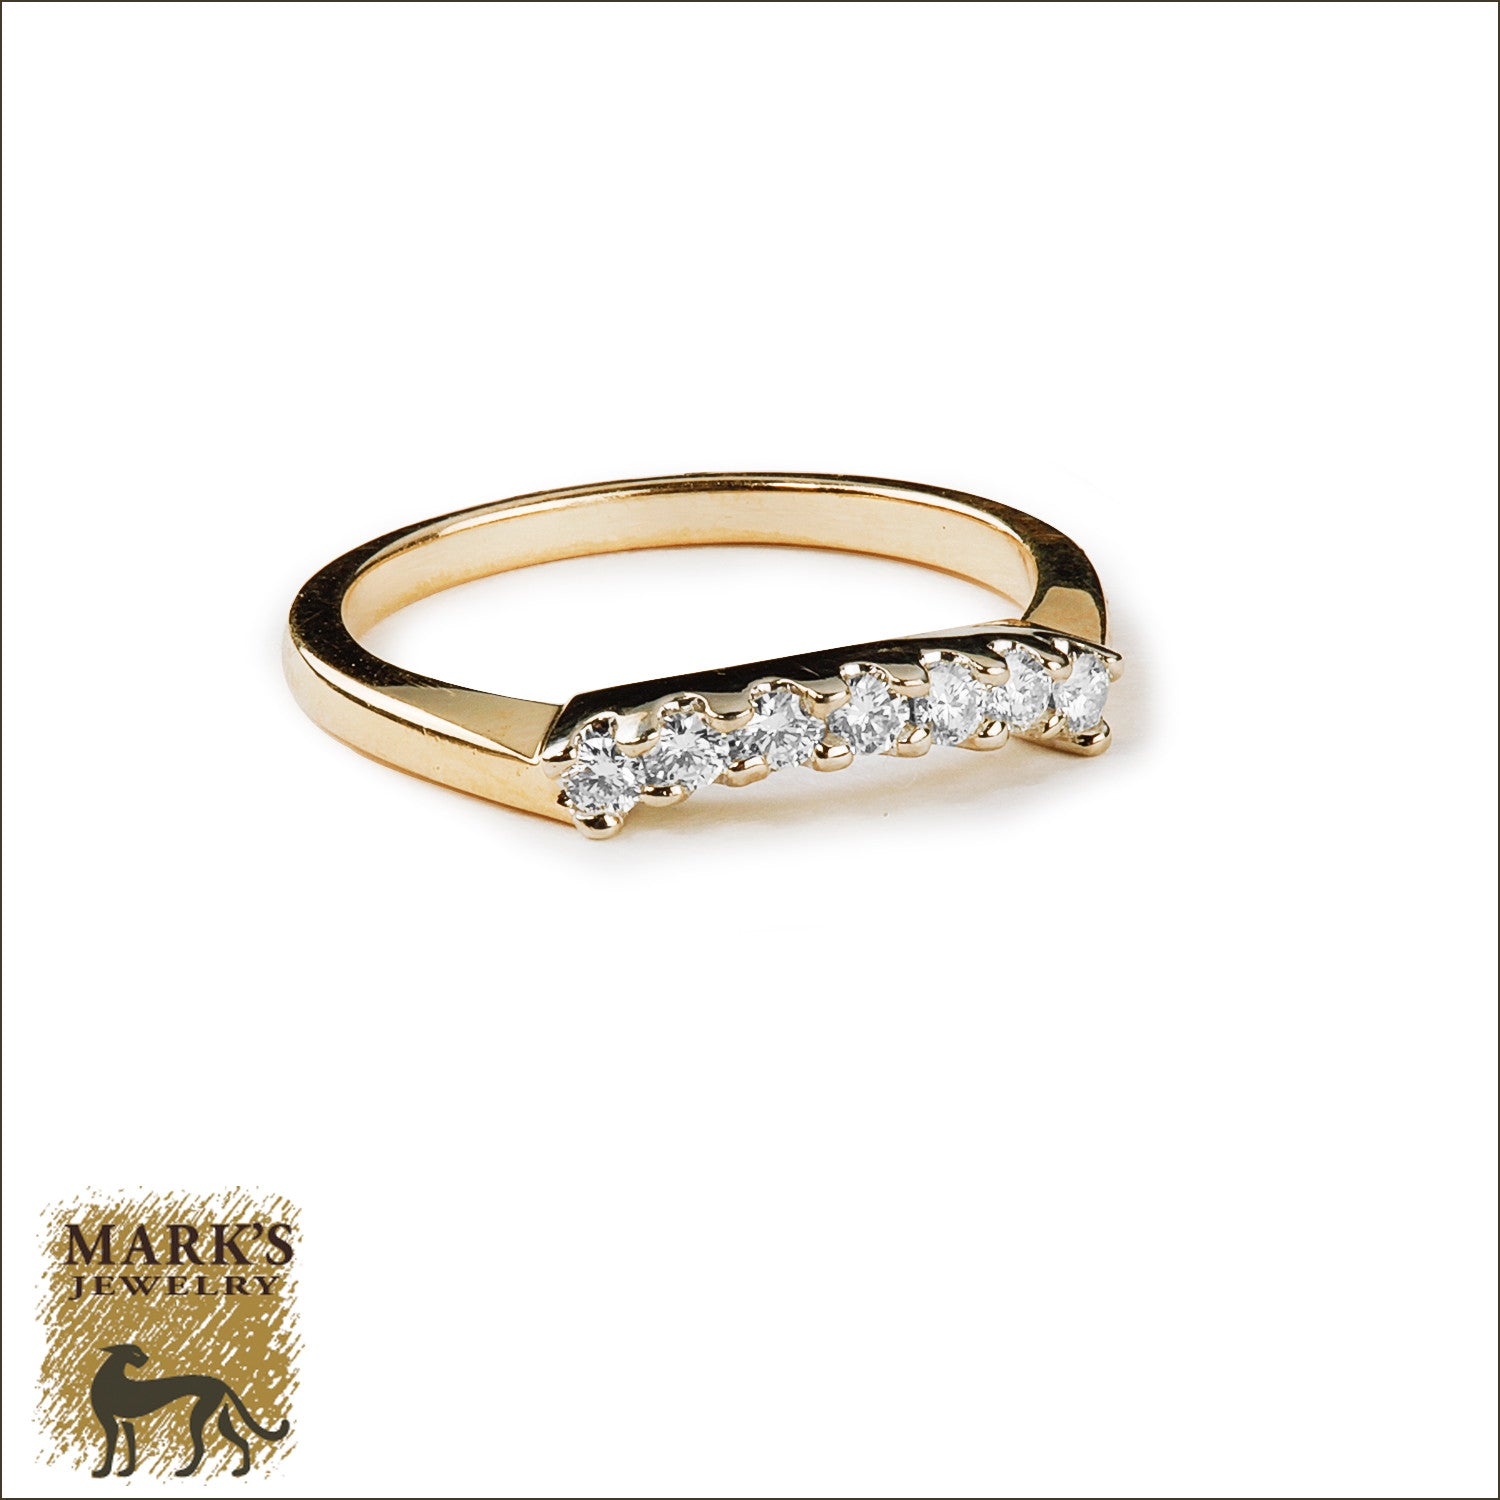 14K TT 0.25 cttw Curved Diamond Band